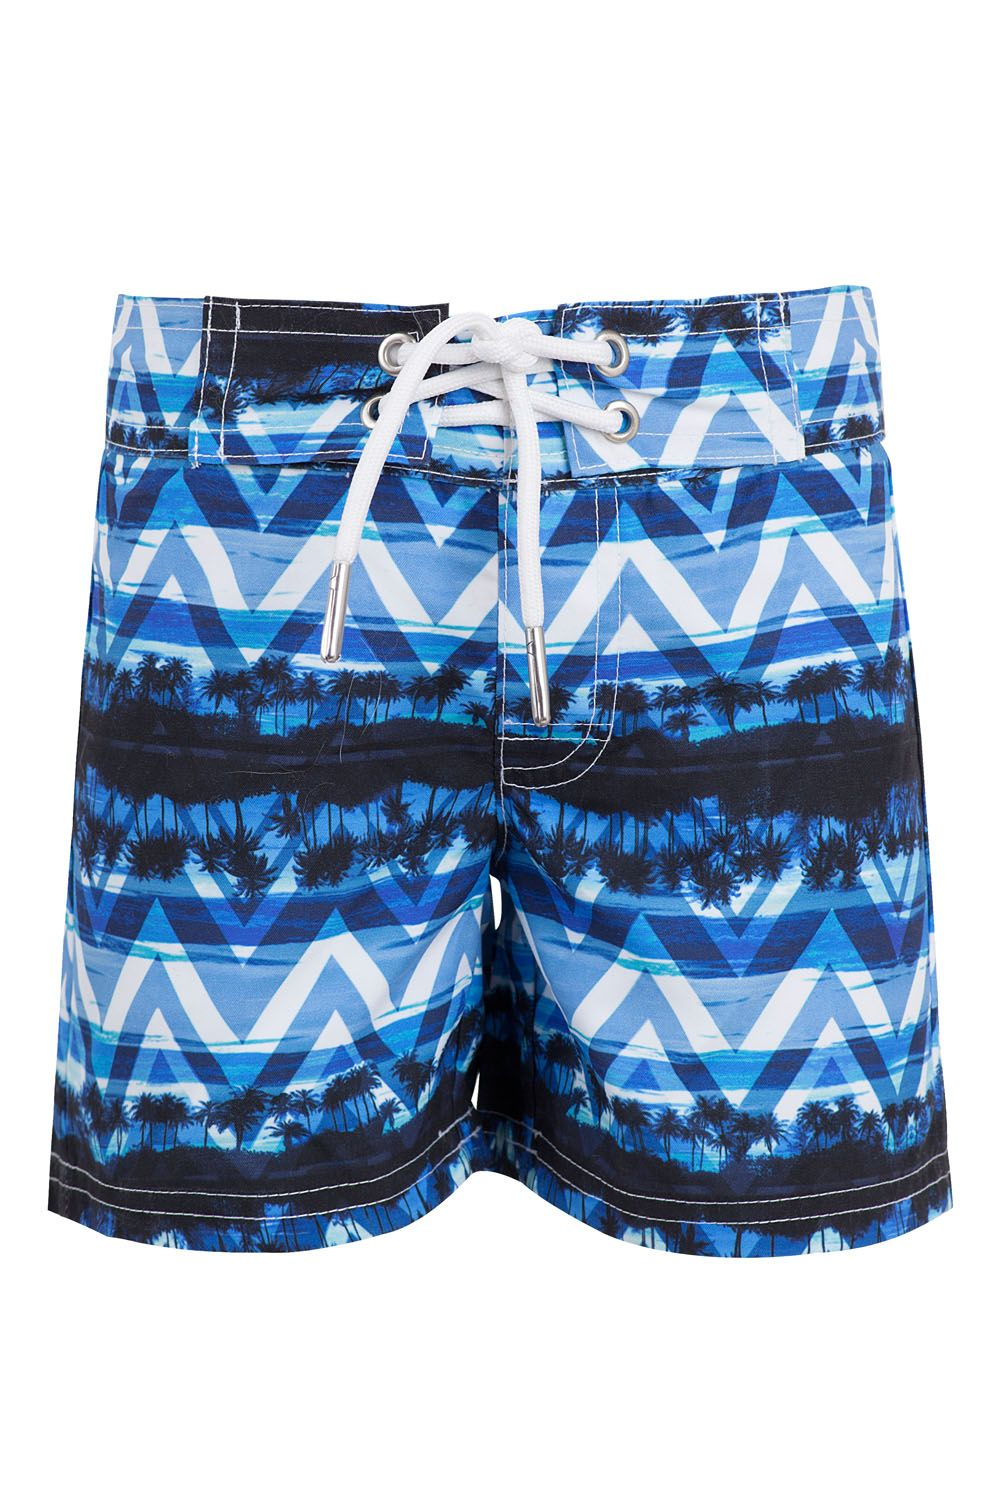 Endless Summer Boys  Board Shorts